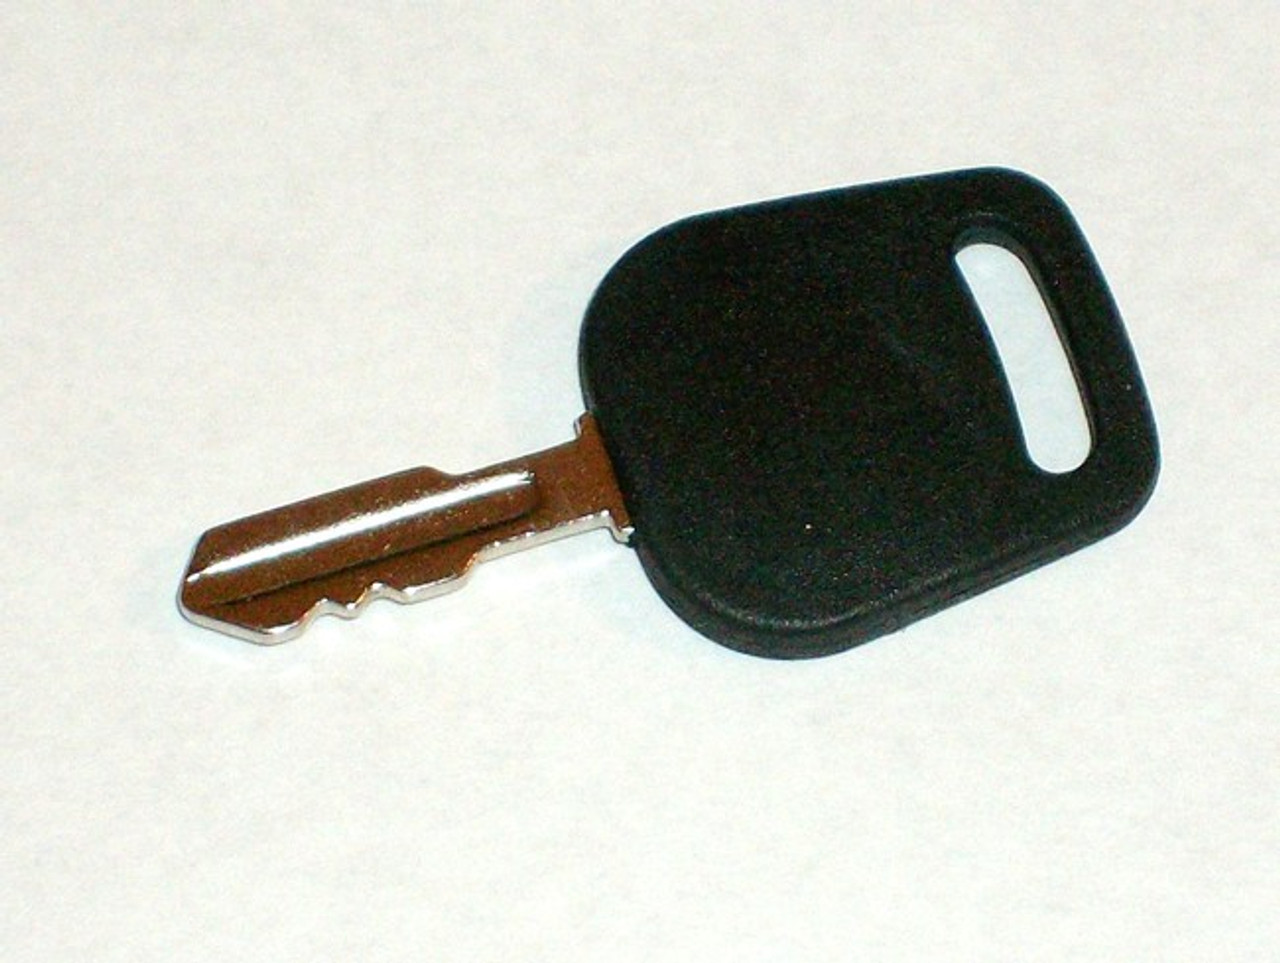 Ignition Starter Switch Key for Poulan 140403, 411932